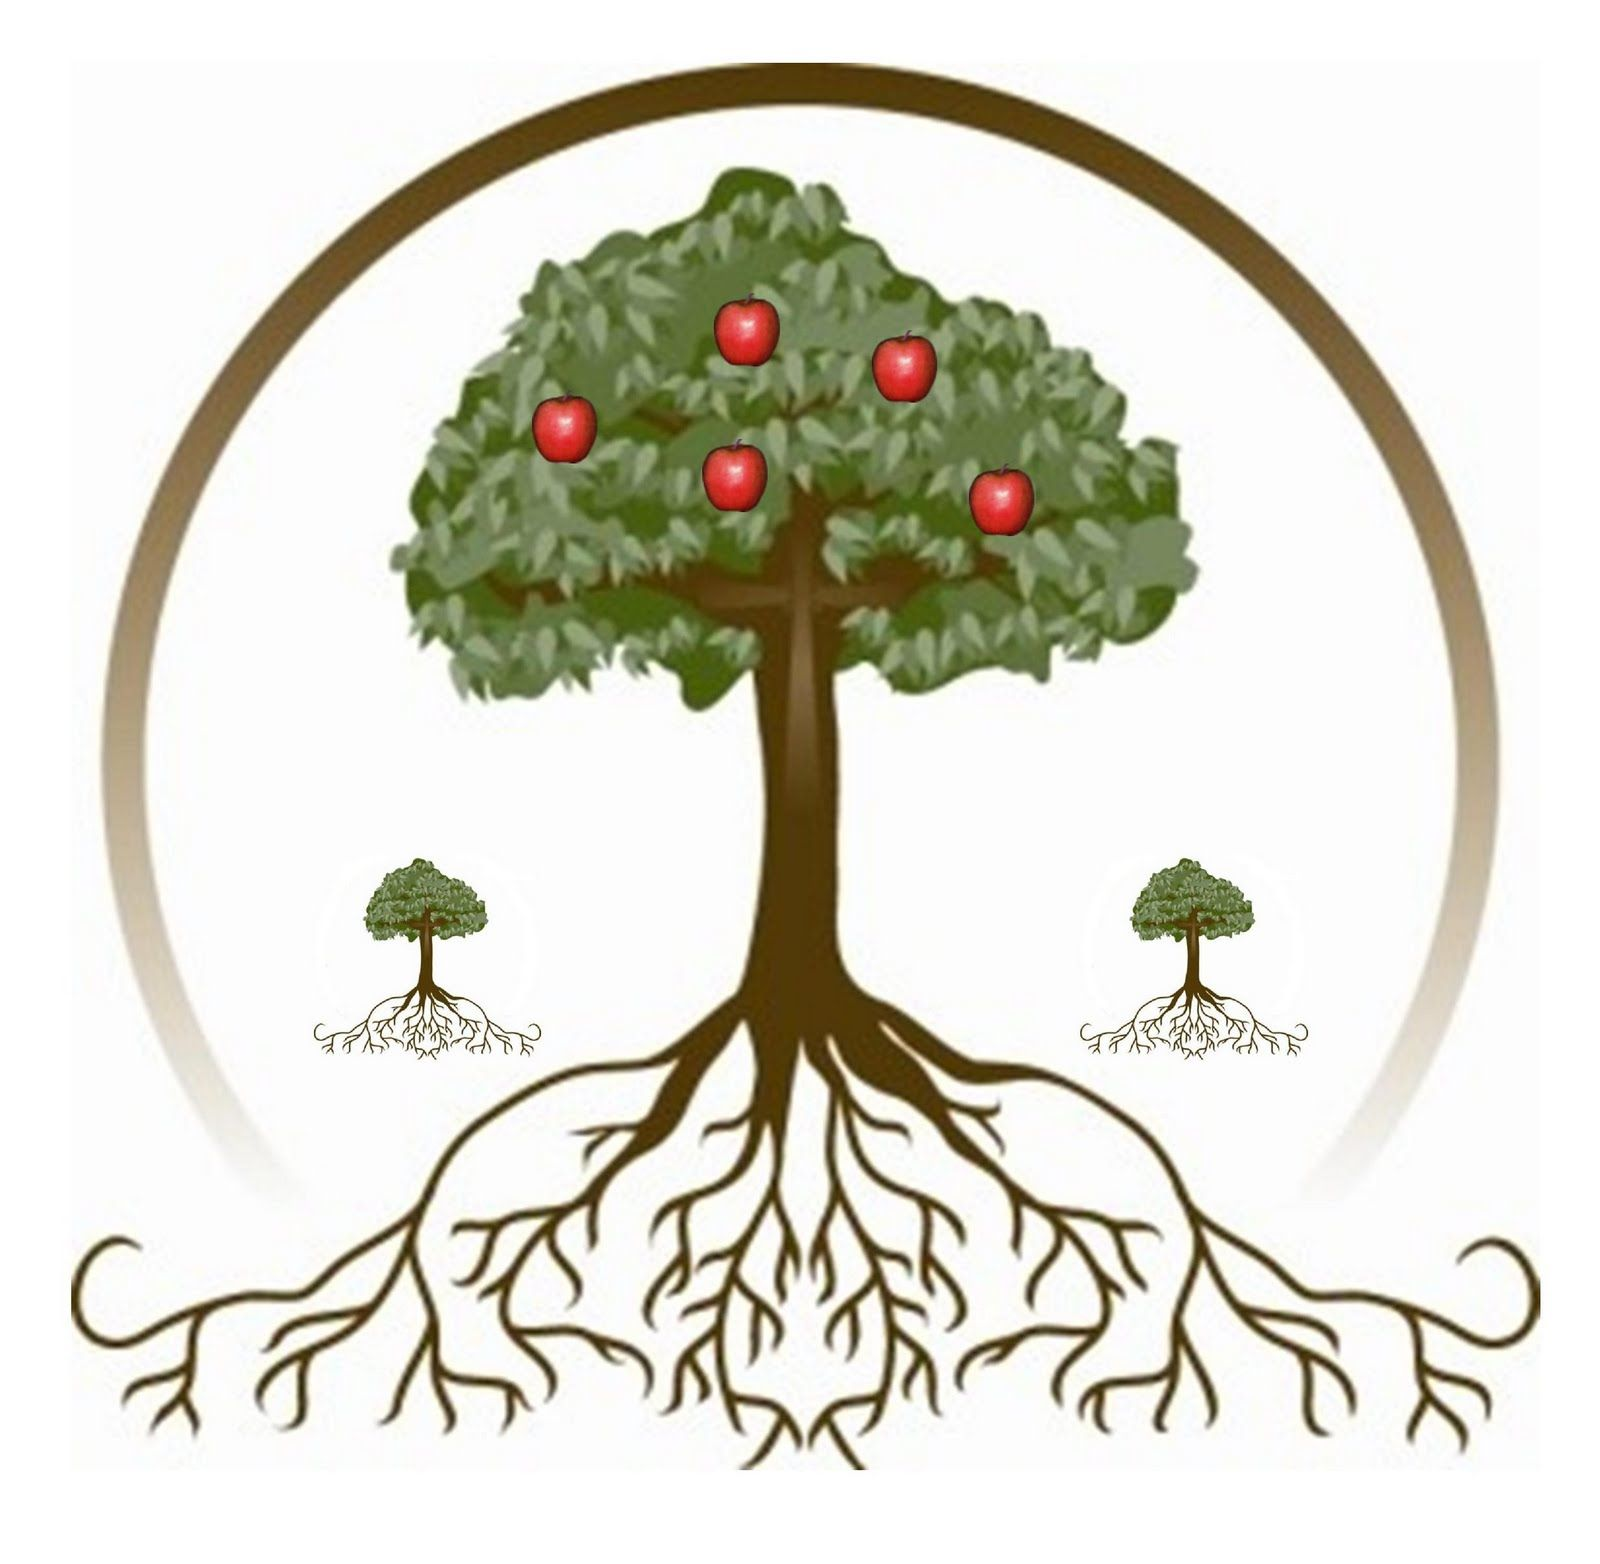 Roots clipart apple tree. With best logos pinterest